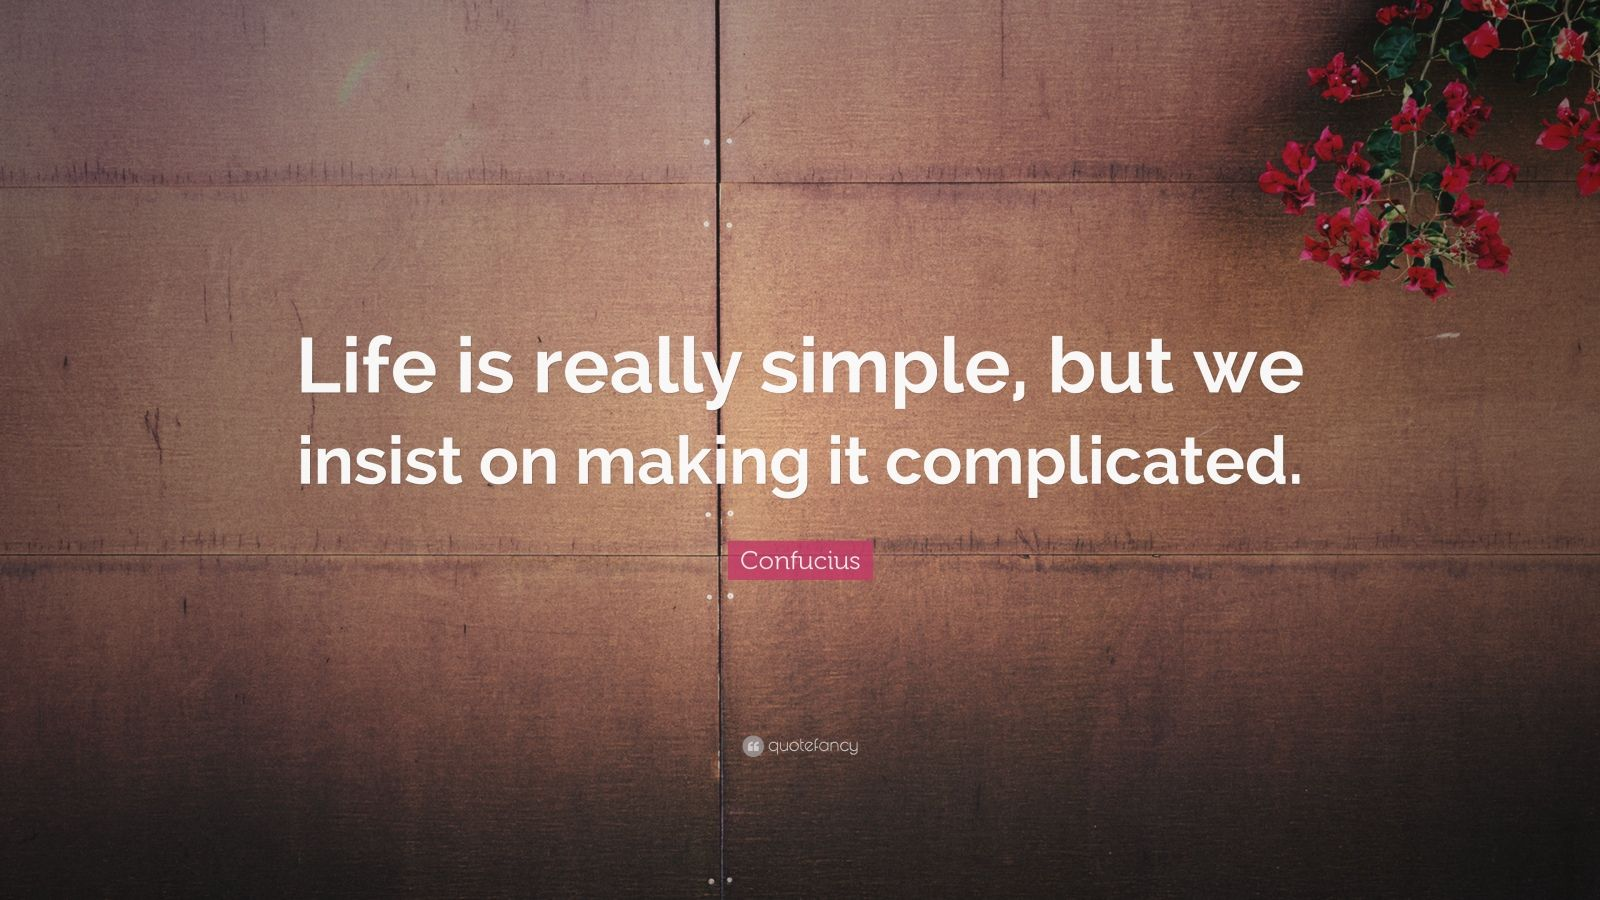 Beautiful Wallpapers With Inspirational Quotes Confucius Quote Life Is Really Simple But We Insist On